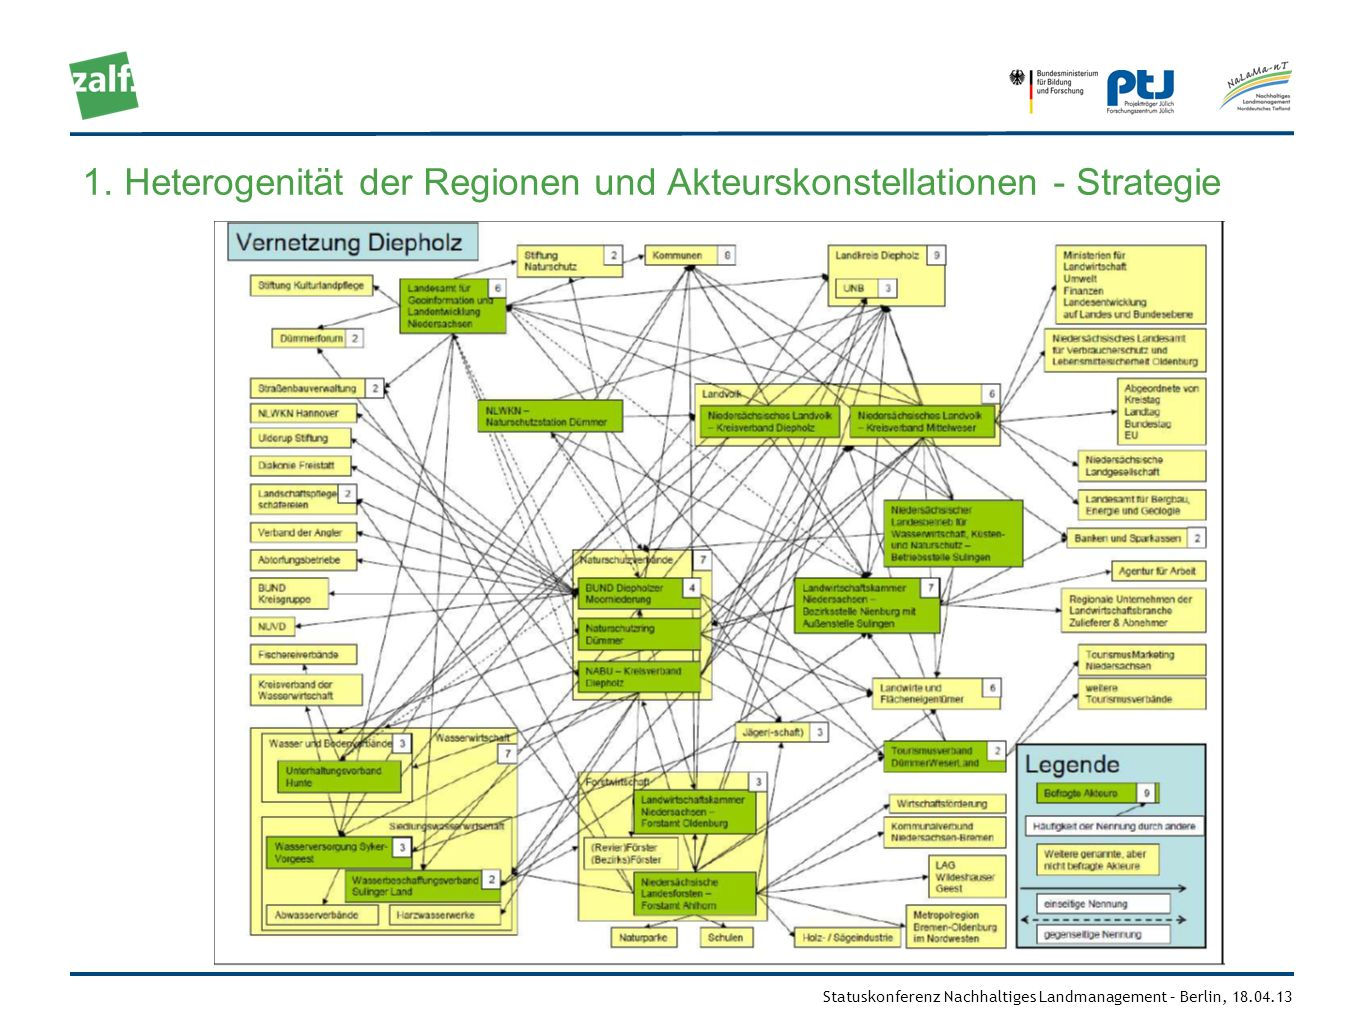 1. Heterogenität der Regionen und Akteurskonstellationen - Strategie